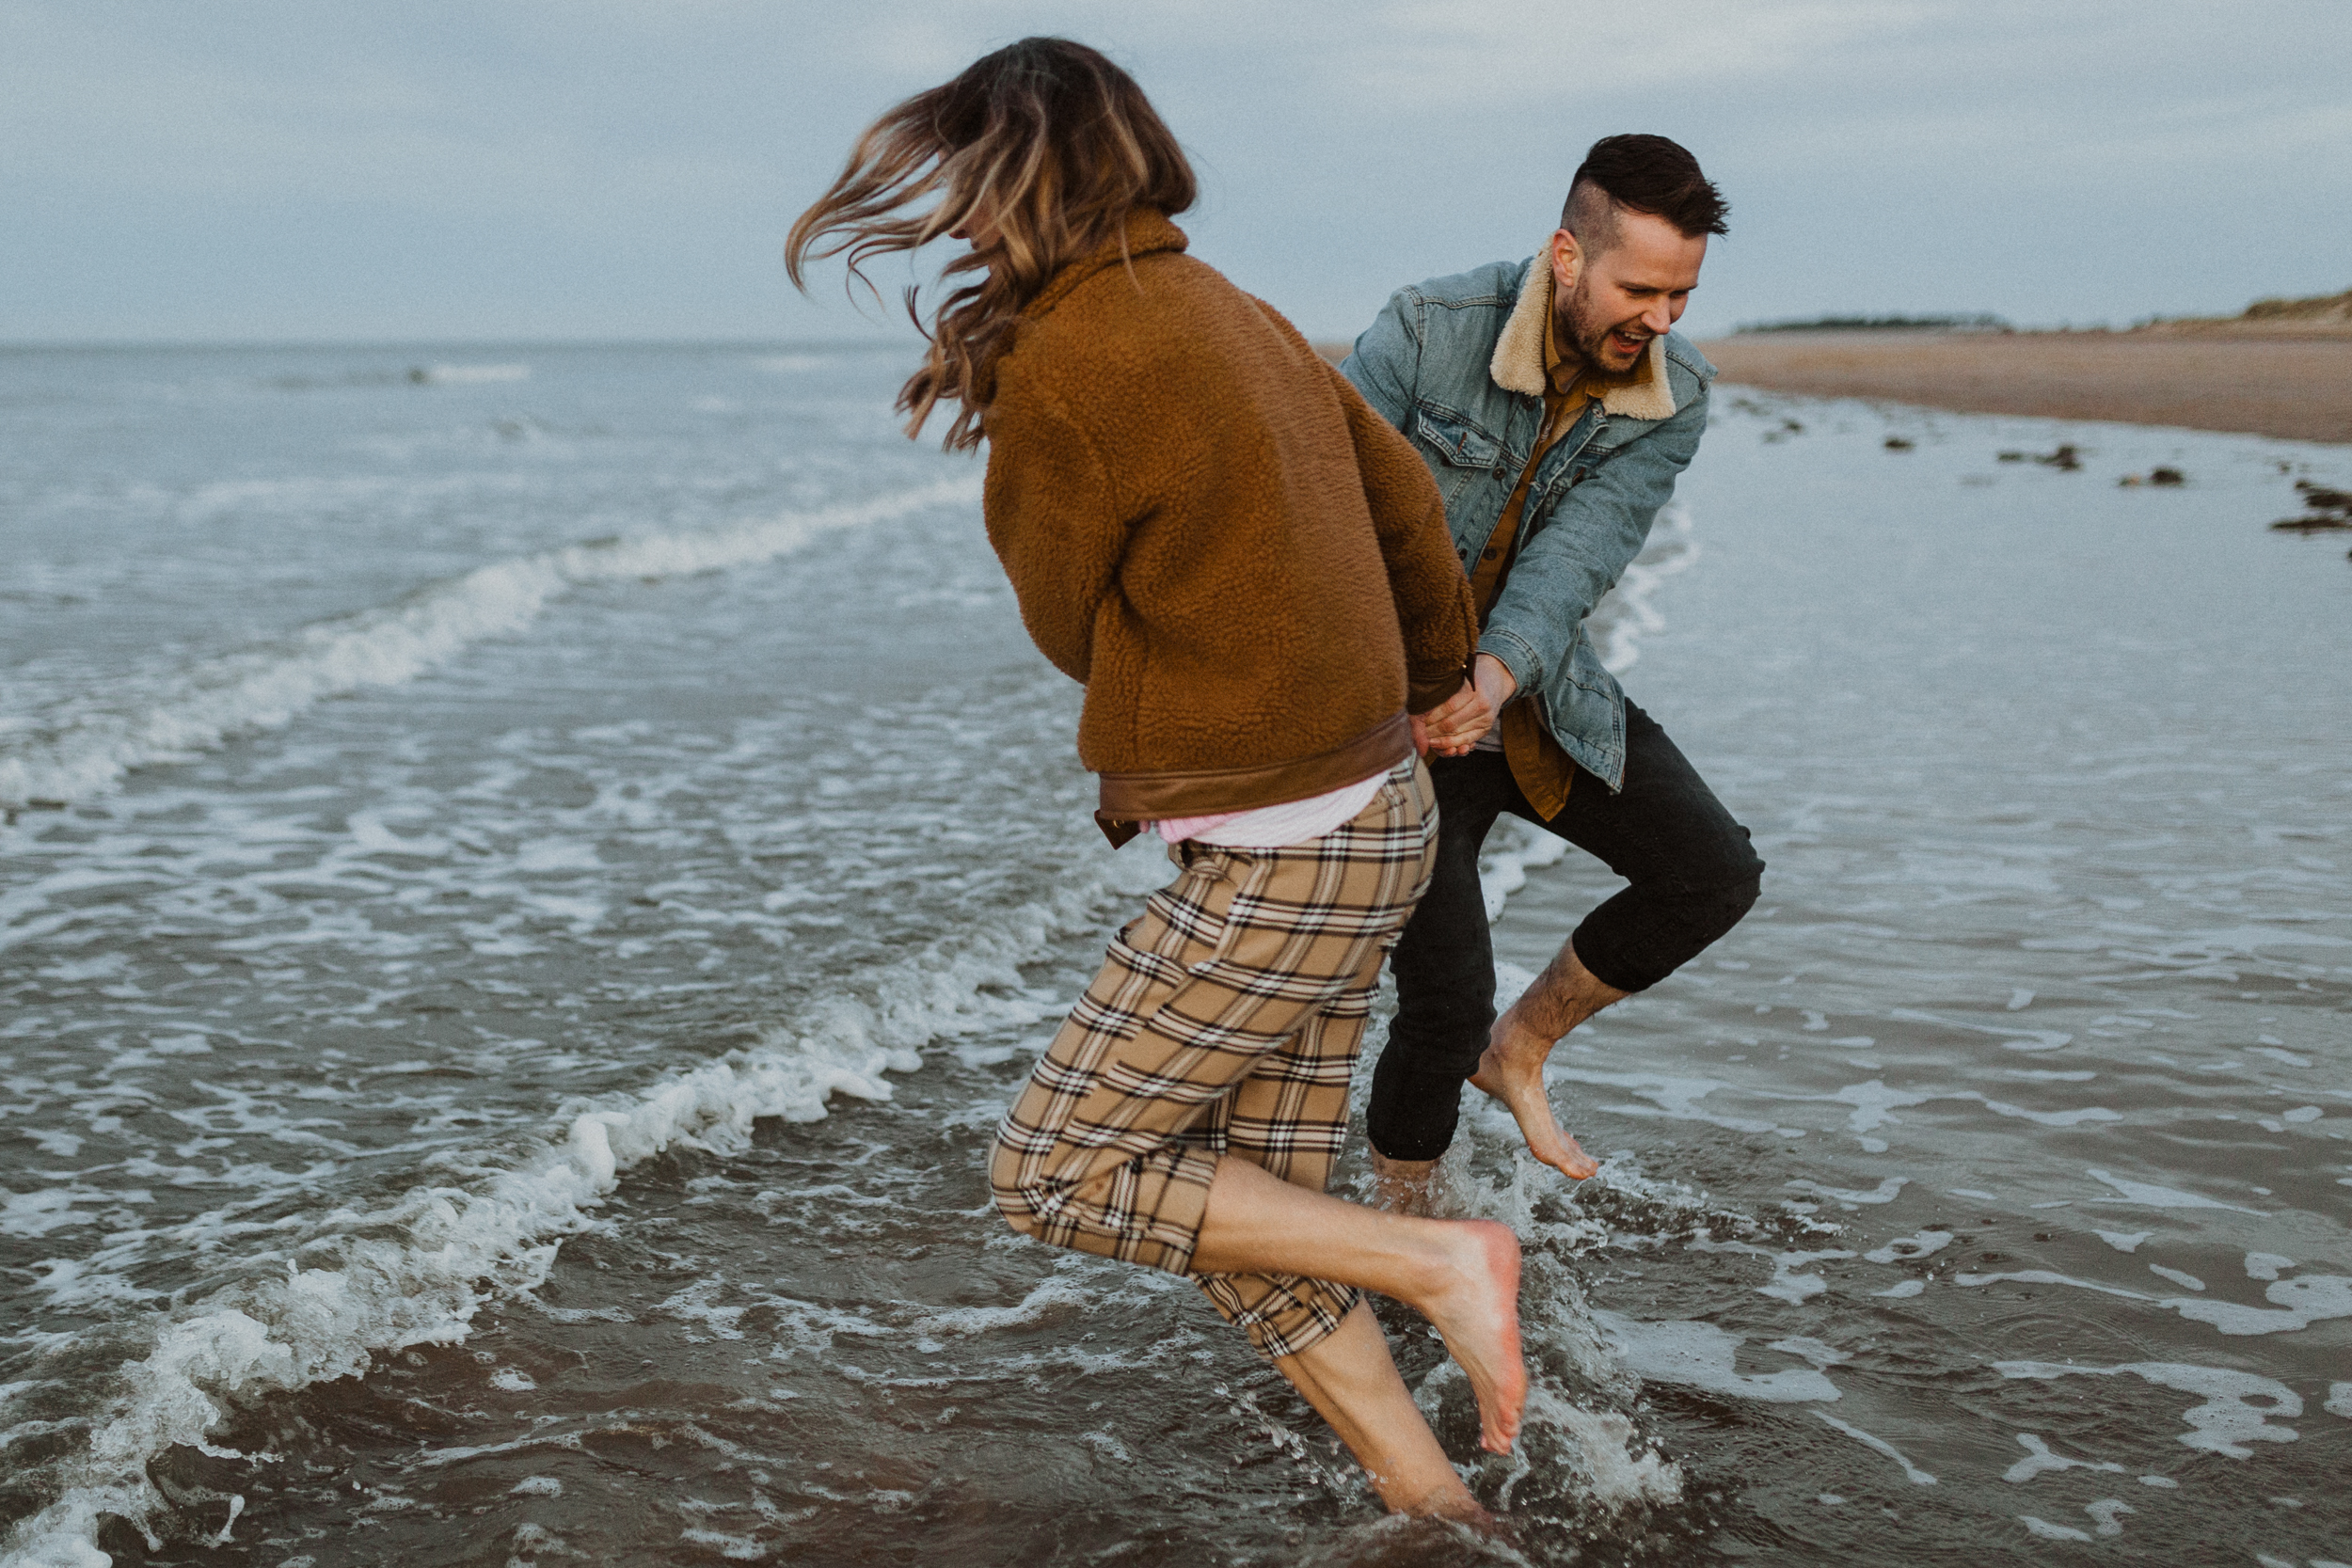 Claire-Liam-Beach-Coastal-Engagement-Session-Norfolk-Darina-Stoda-Photography-25.jpg